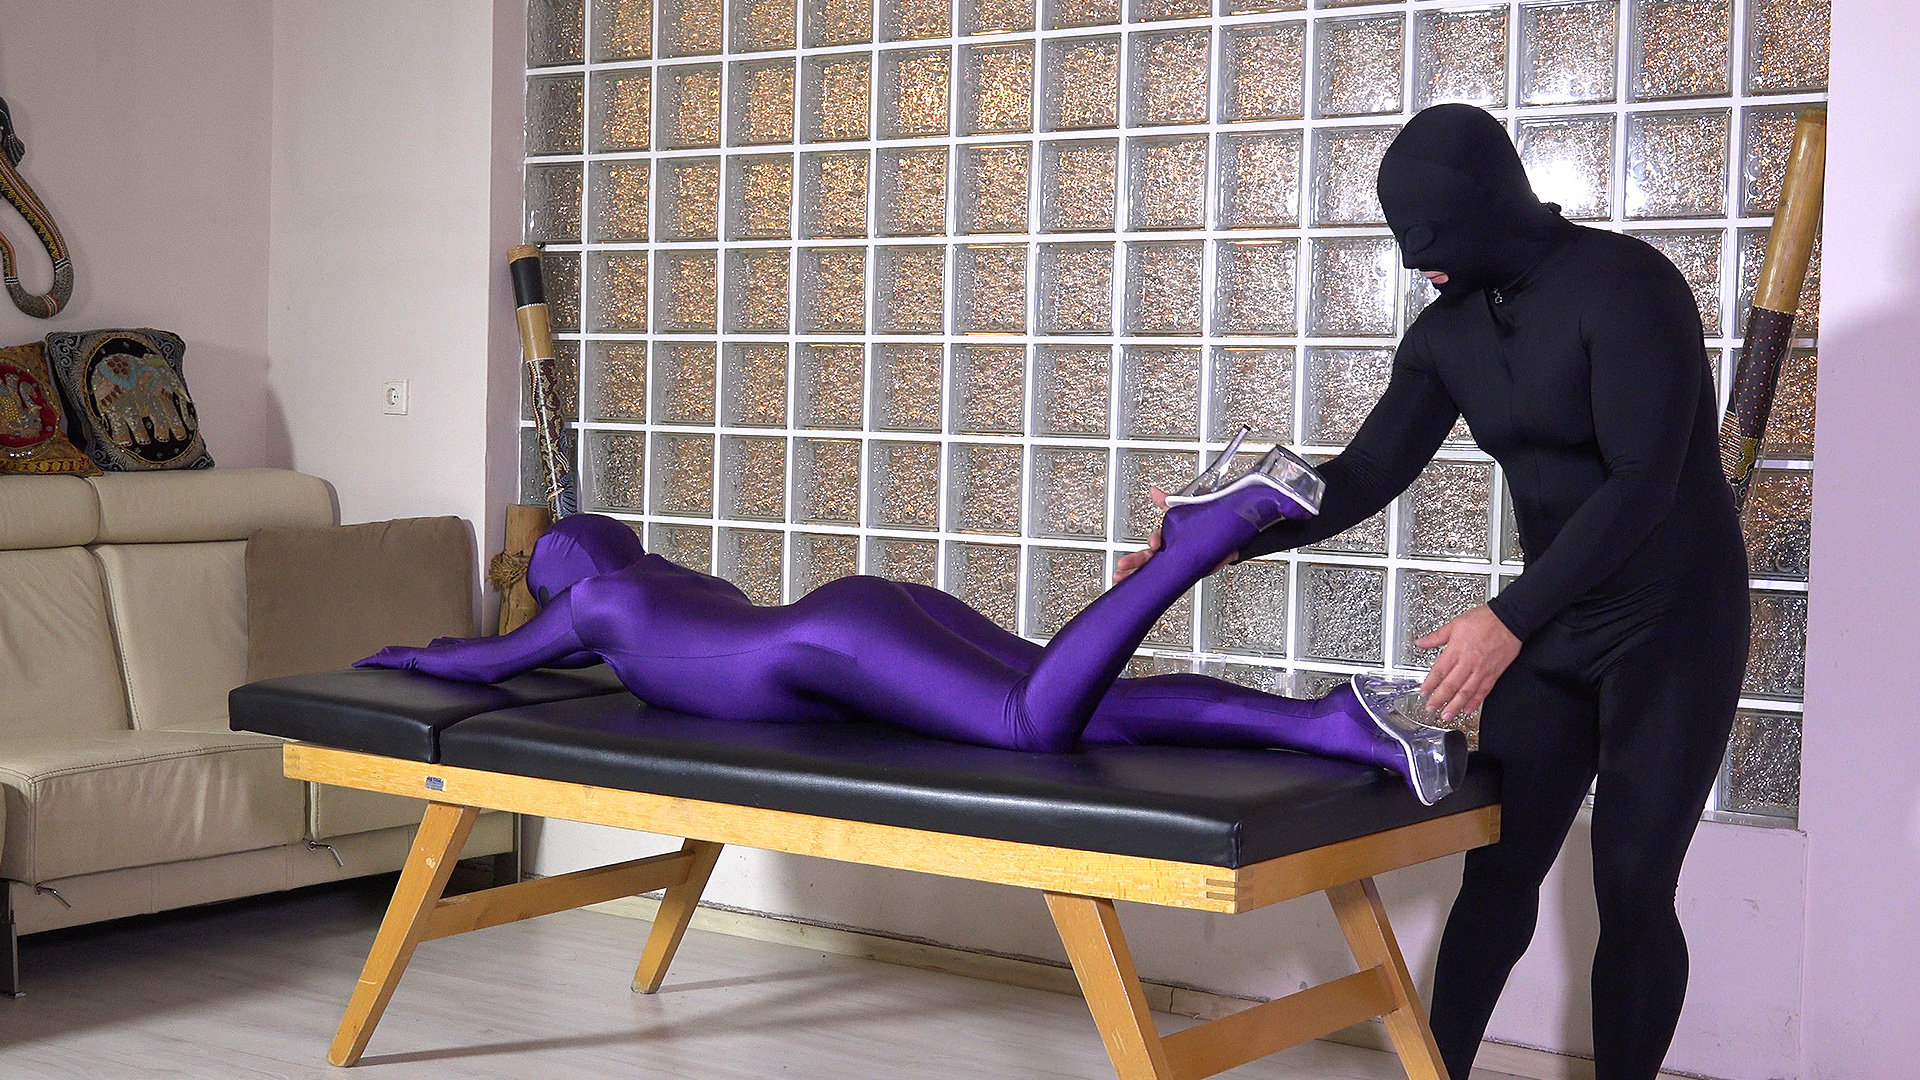 Erotic Massage Zentai Duo